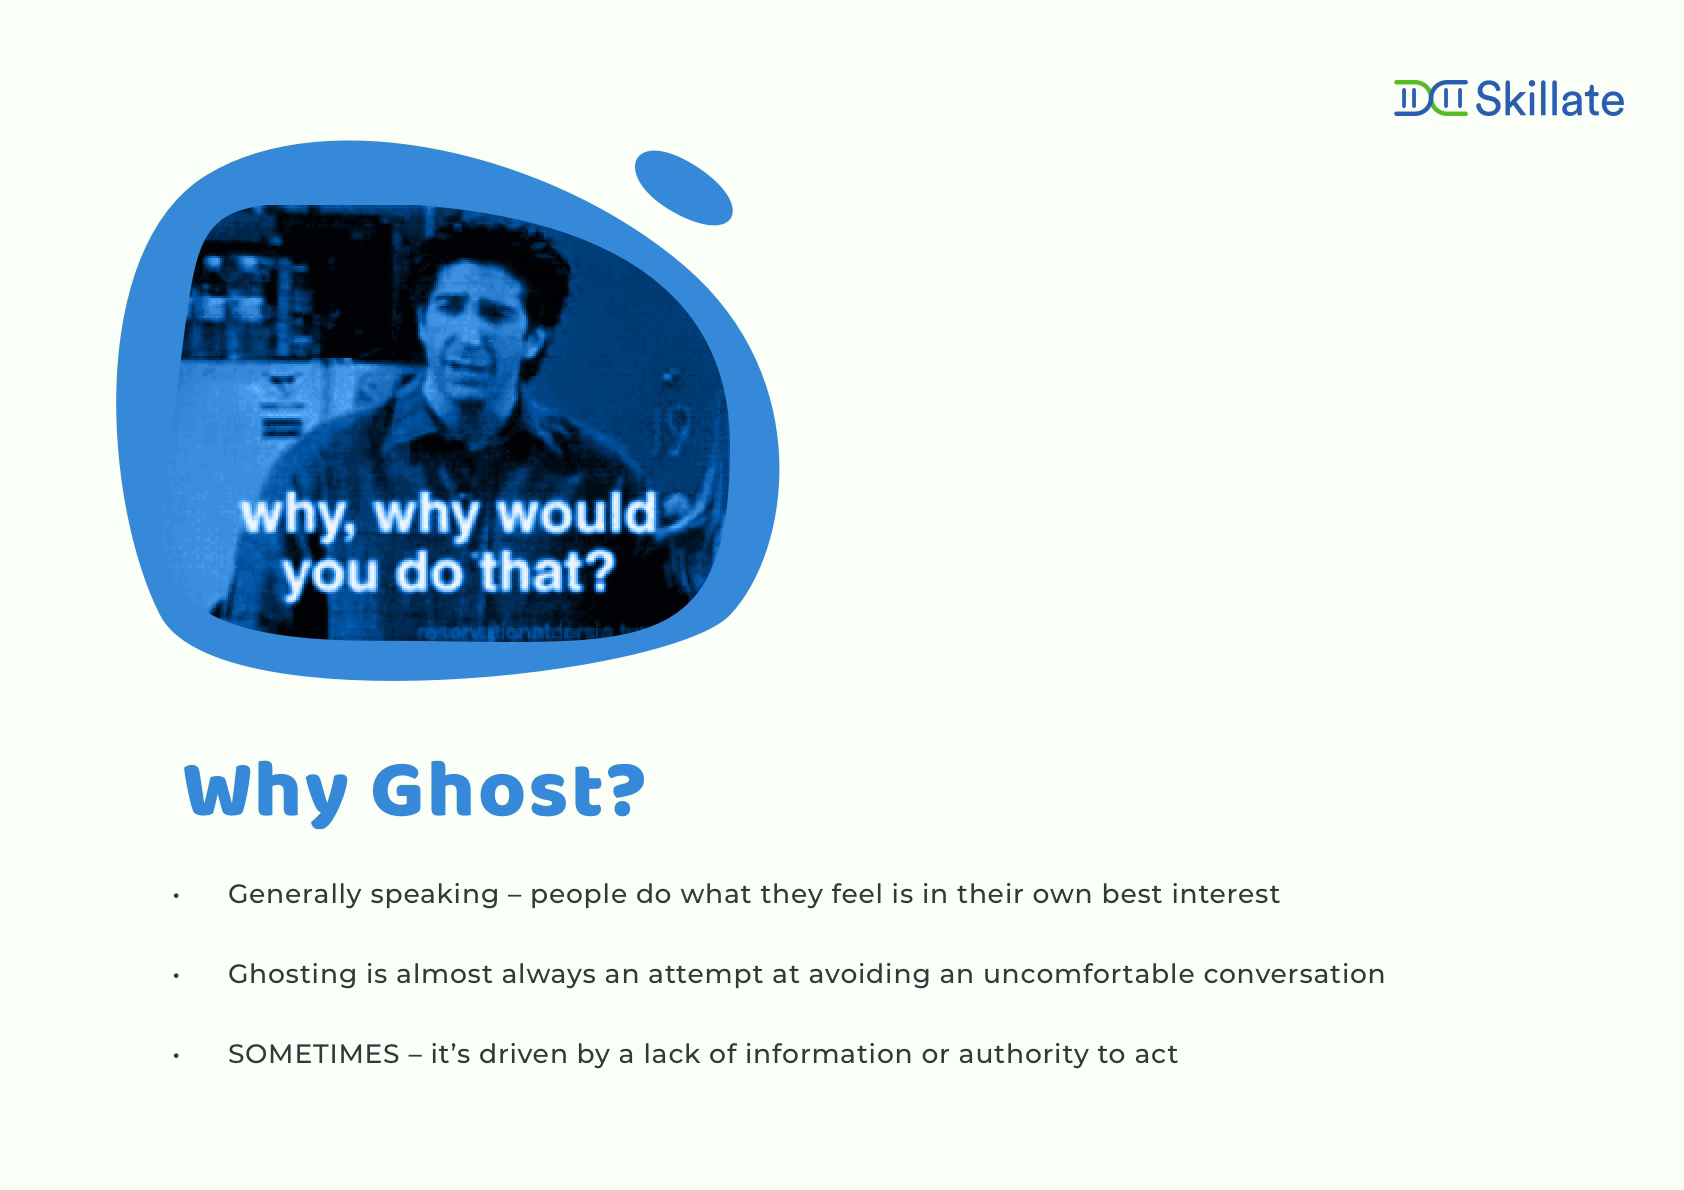 Why do people ghost?